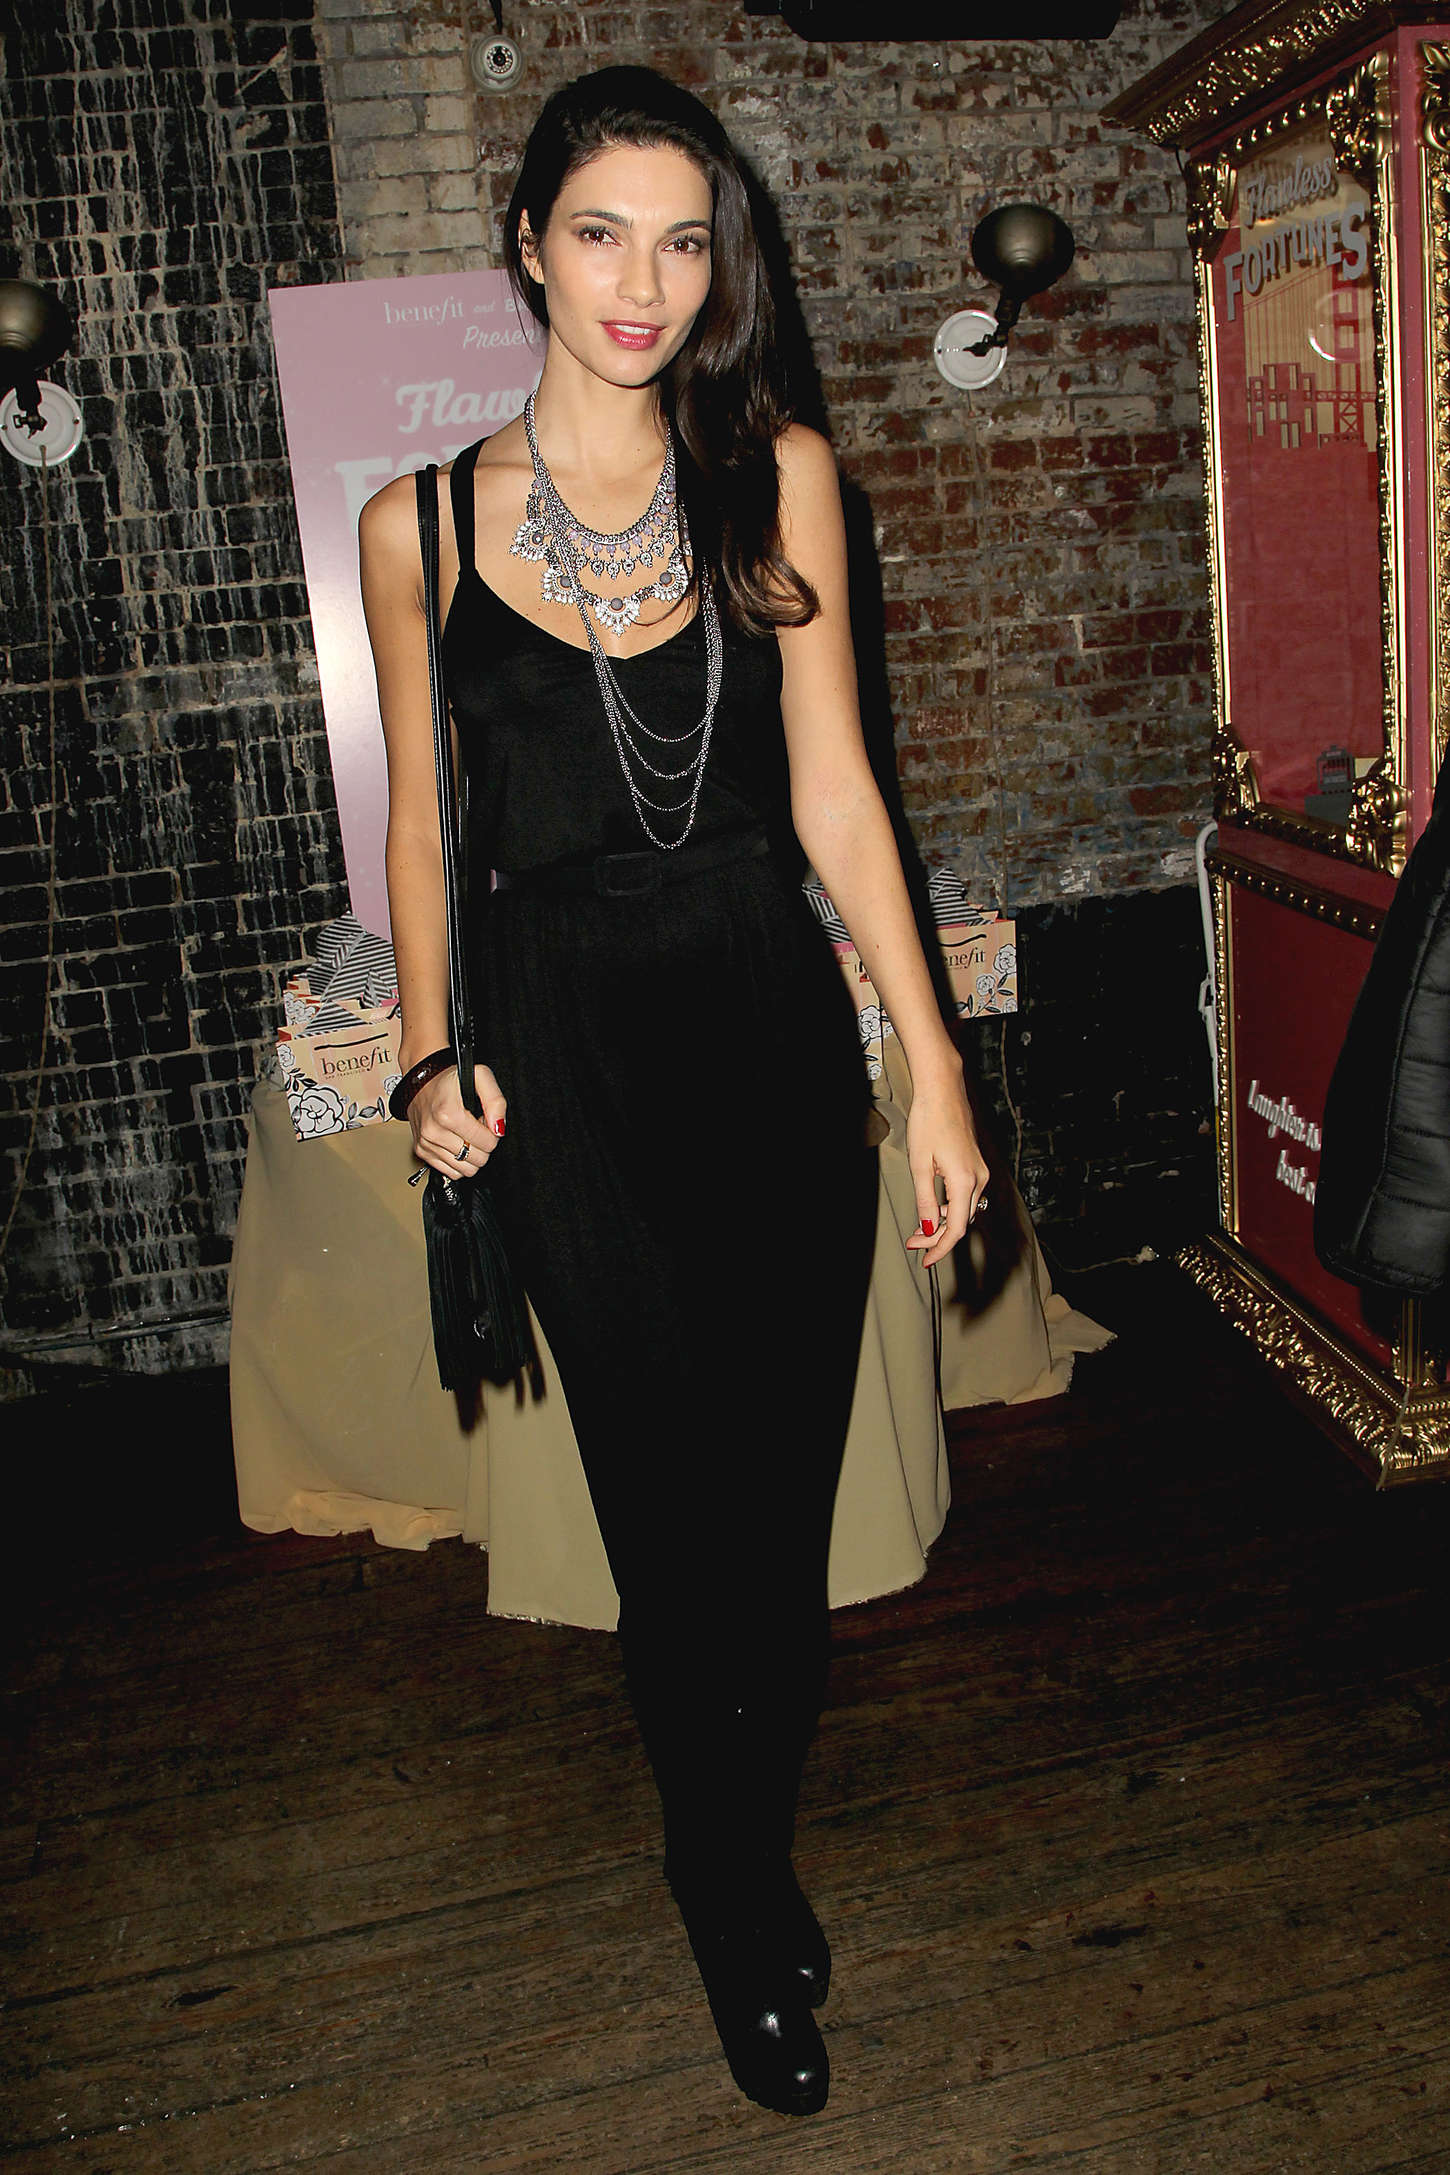 Teresa Moore Benefit Cosmetics And BaubleBar Collaboration Party in New York